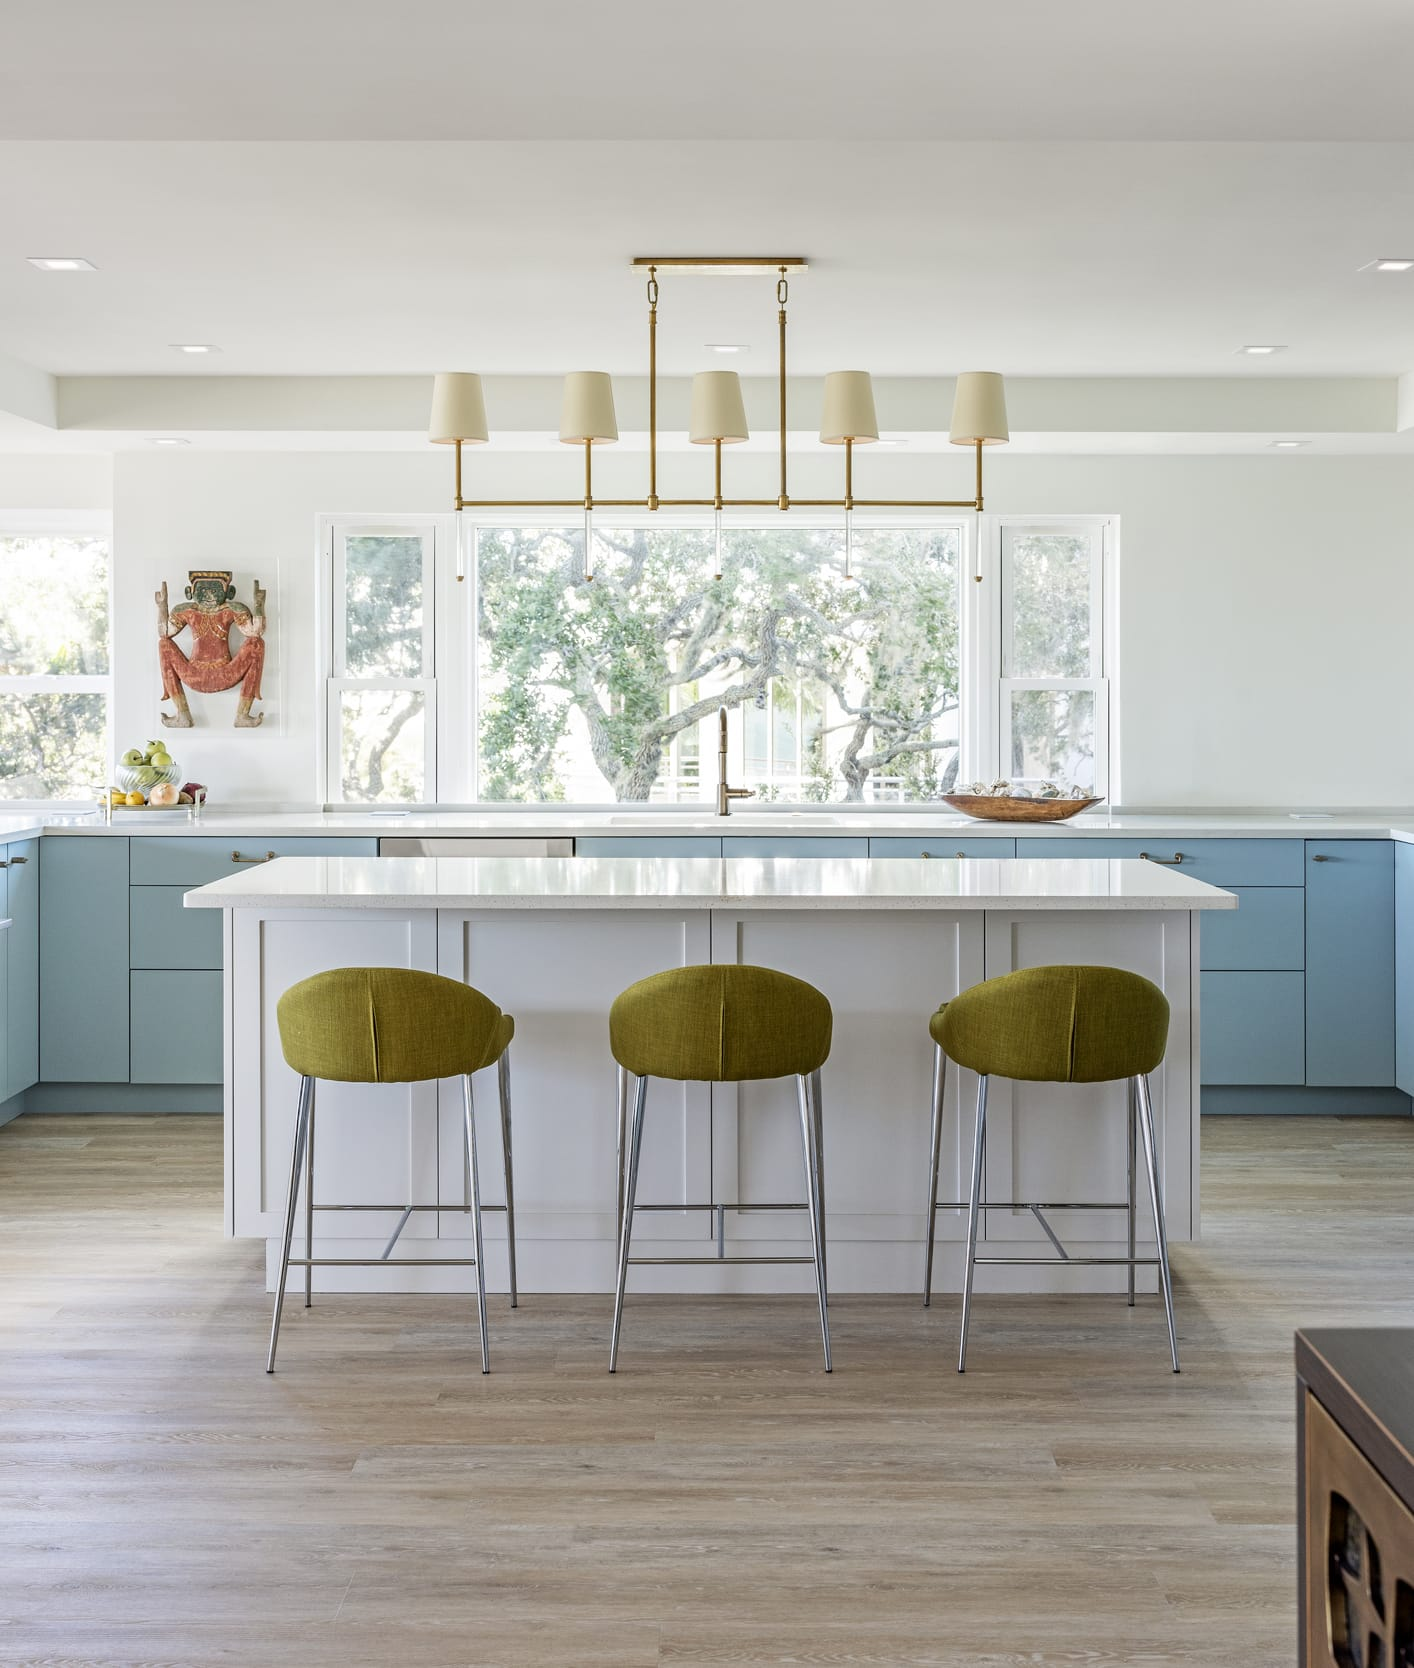 Kitchen Light Blue Cabinets Pea Green High Chairs Blonde Wood Floors Gold Painted Light Fixture